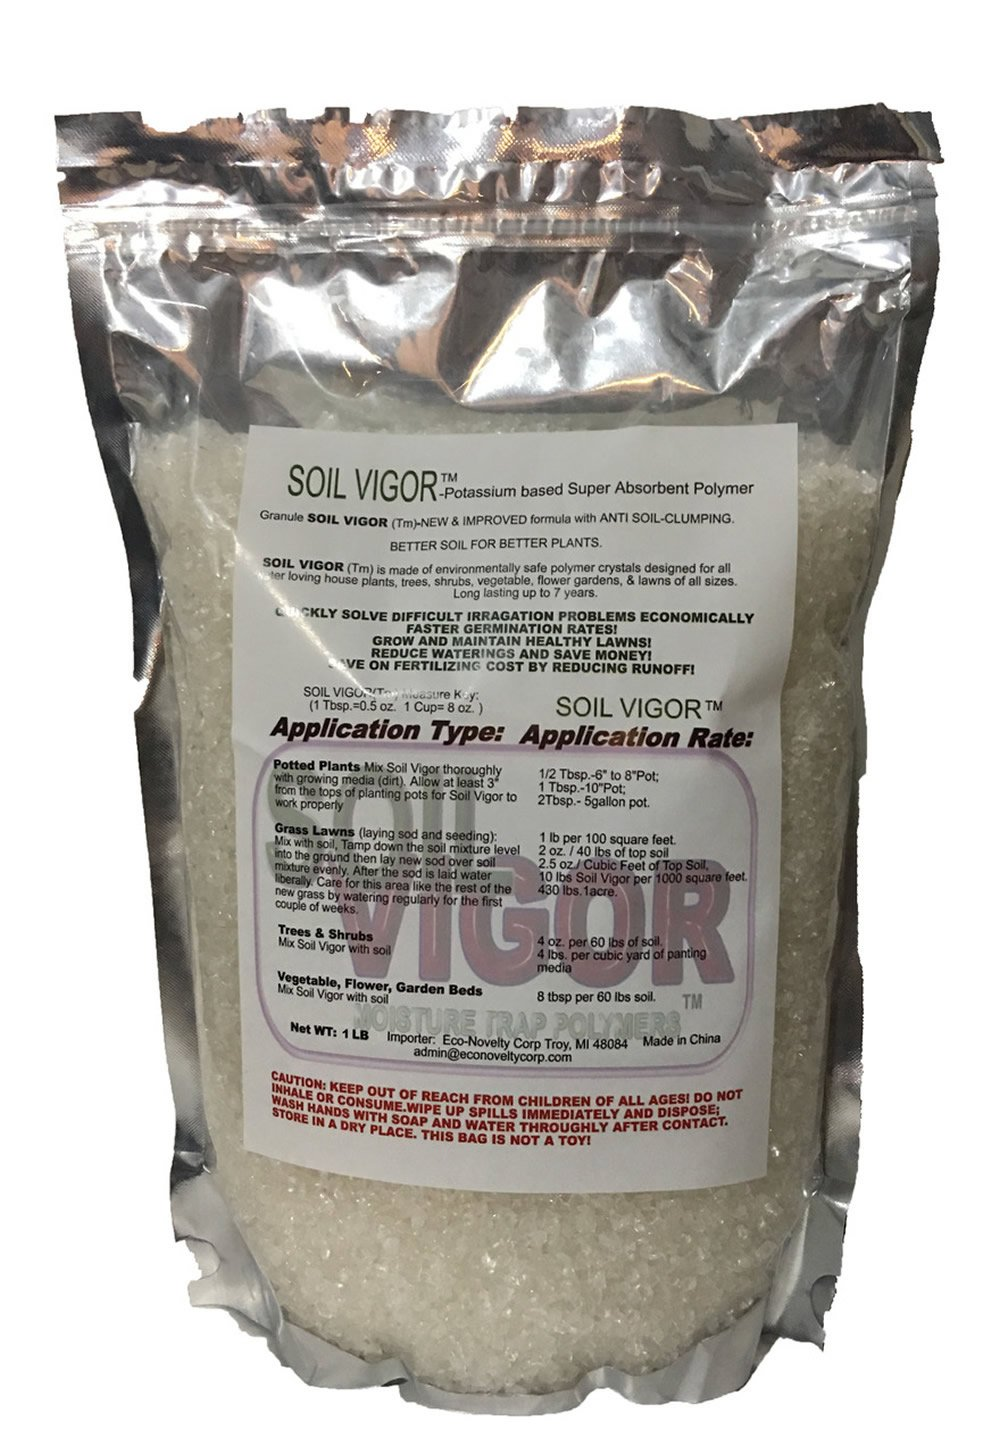 1 Pound Soilmoisture Trap Super Absorbent Hydro Gel Granules Polymer; Soil Vigor (Tm)